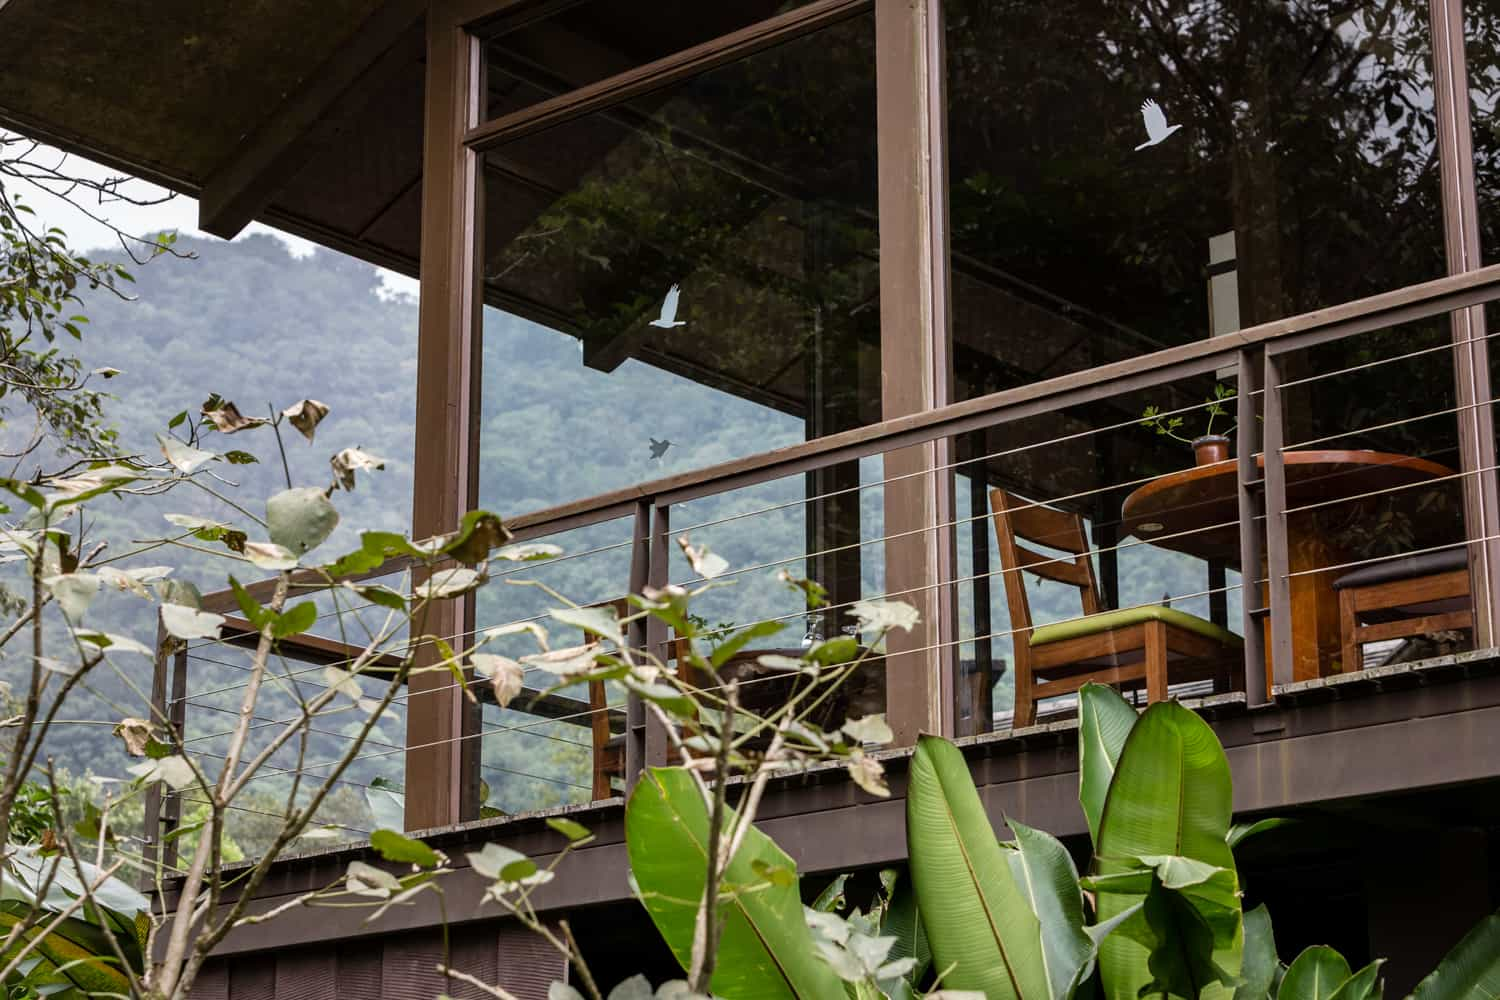 Outside view of restaurant for wedding receptions at El Silencio Lodge.